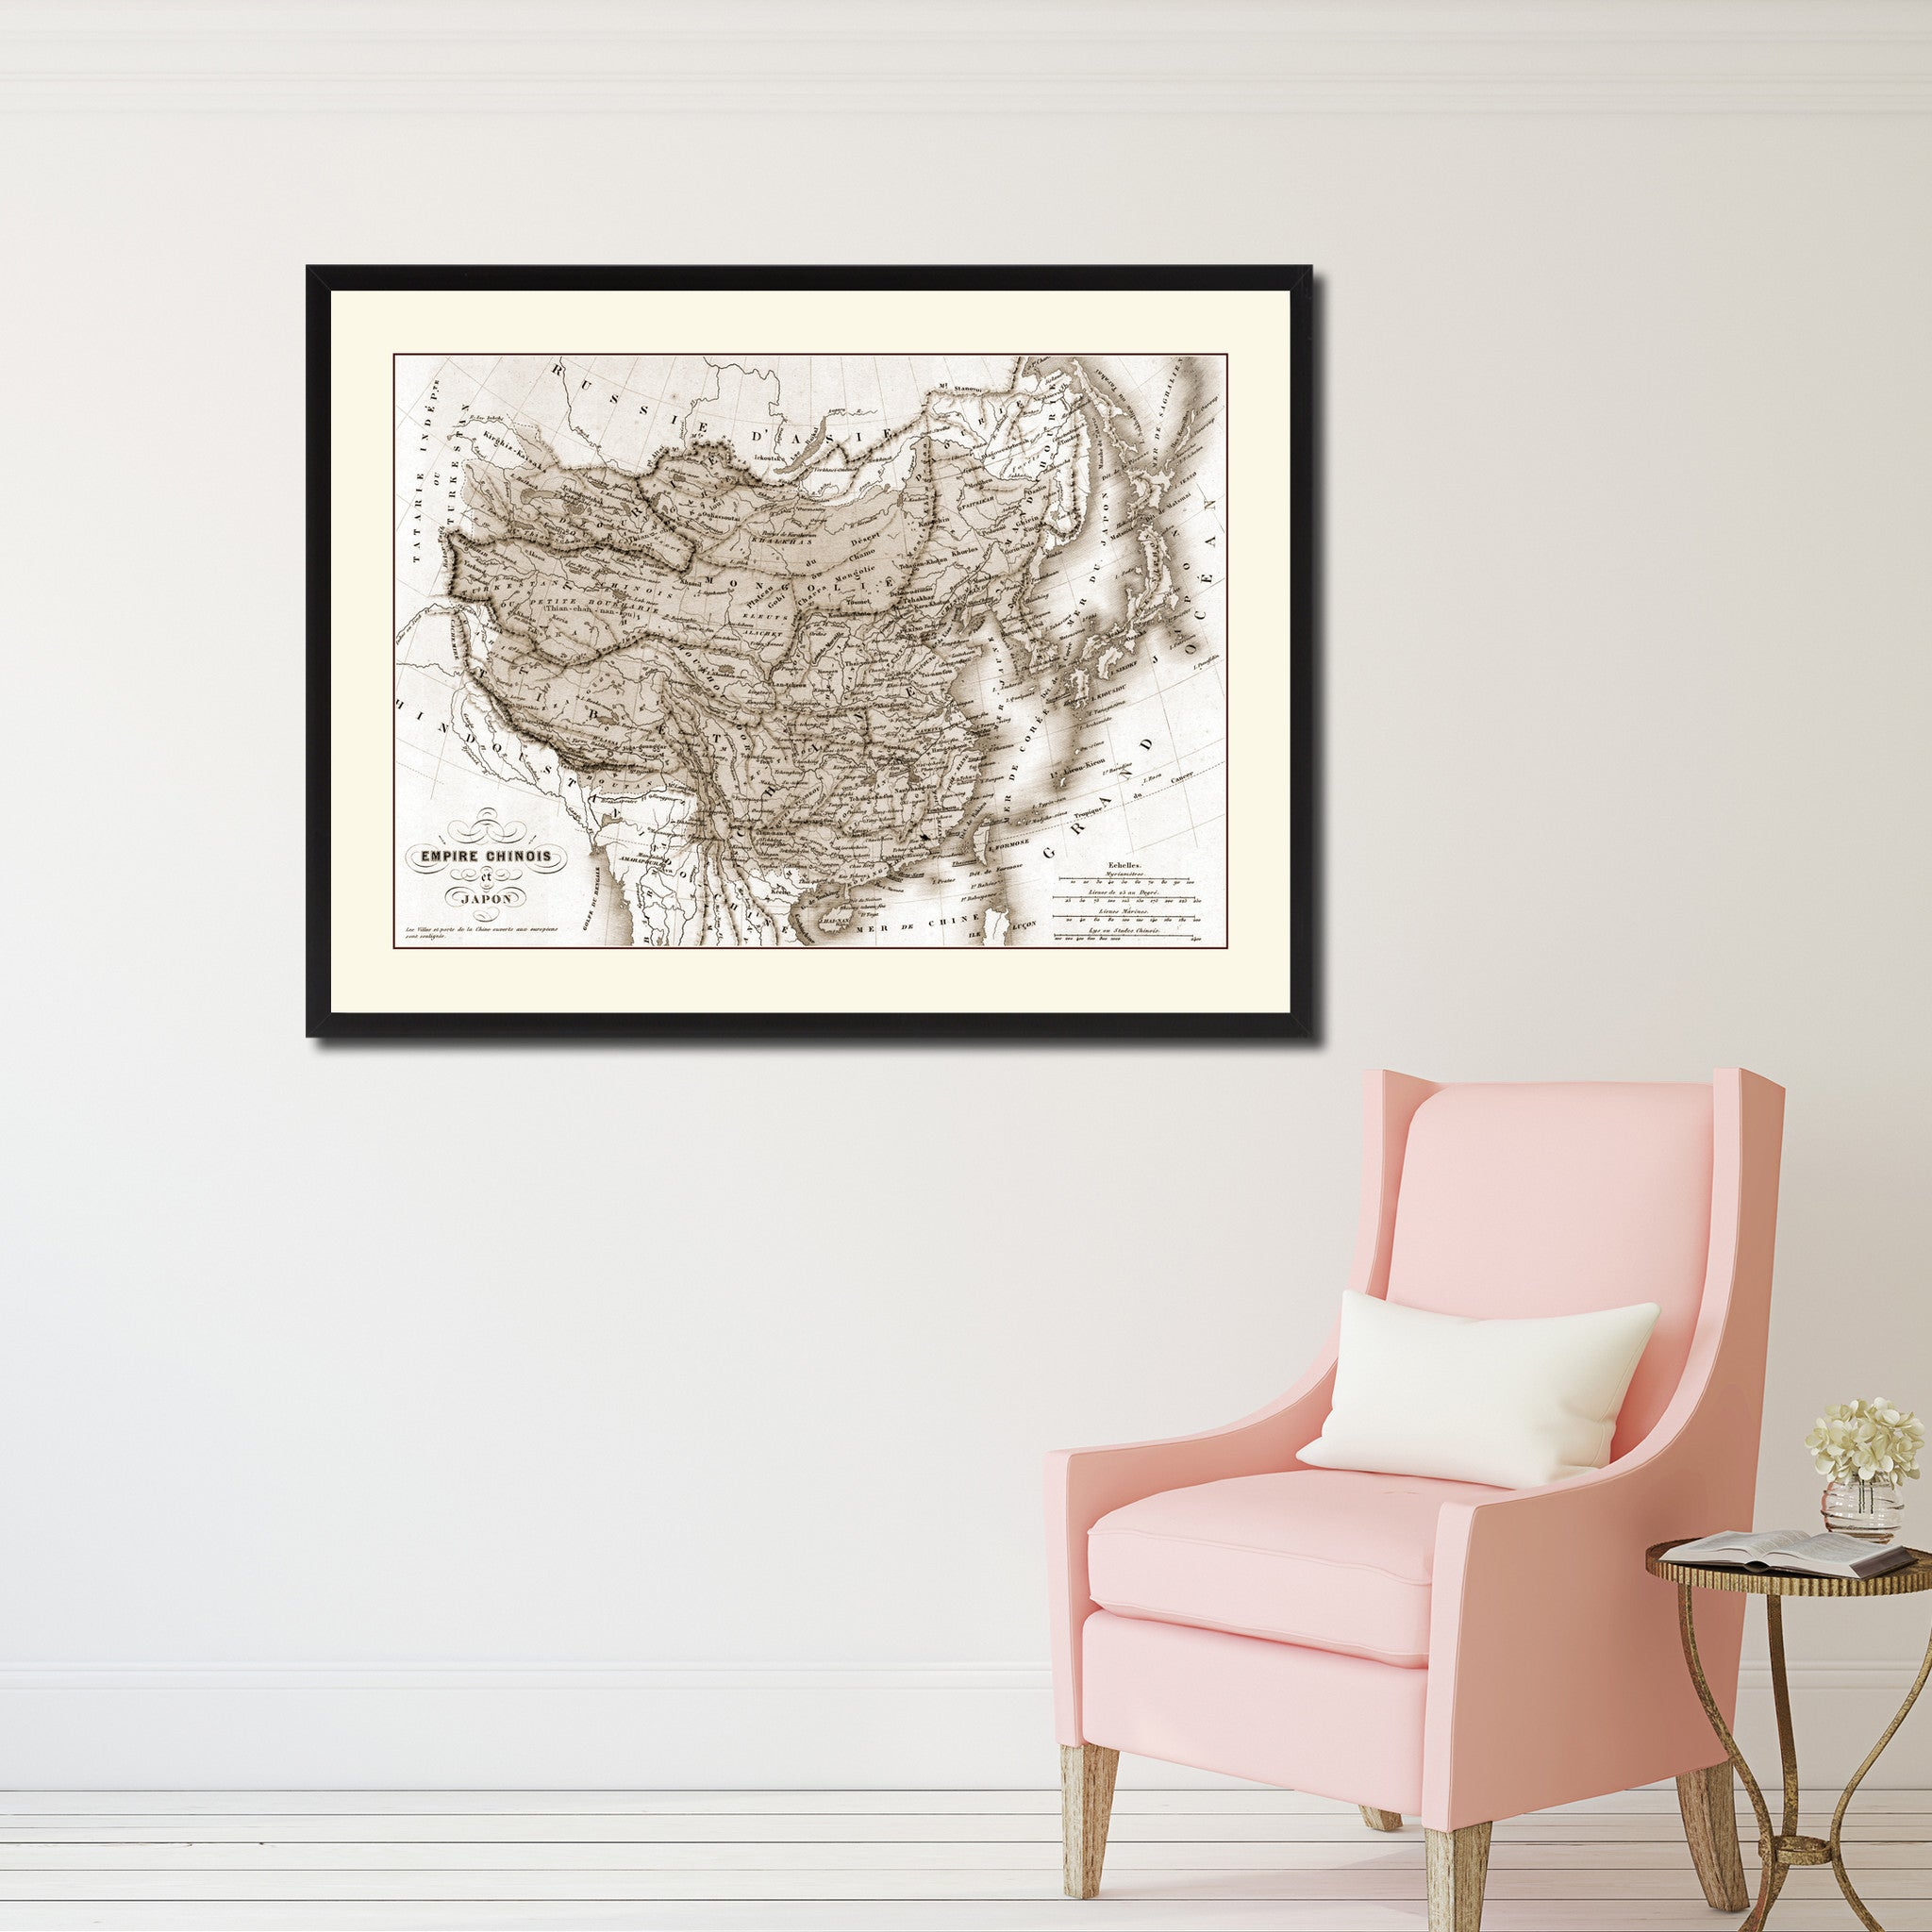 China Japan Korea Vintage Sepia Map Canvas Print, Picture Frame Gifts Home Decor Wall Art Decoration